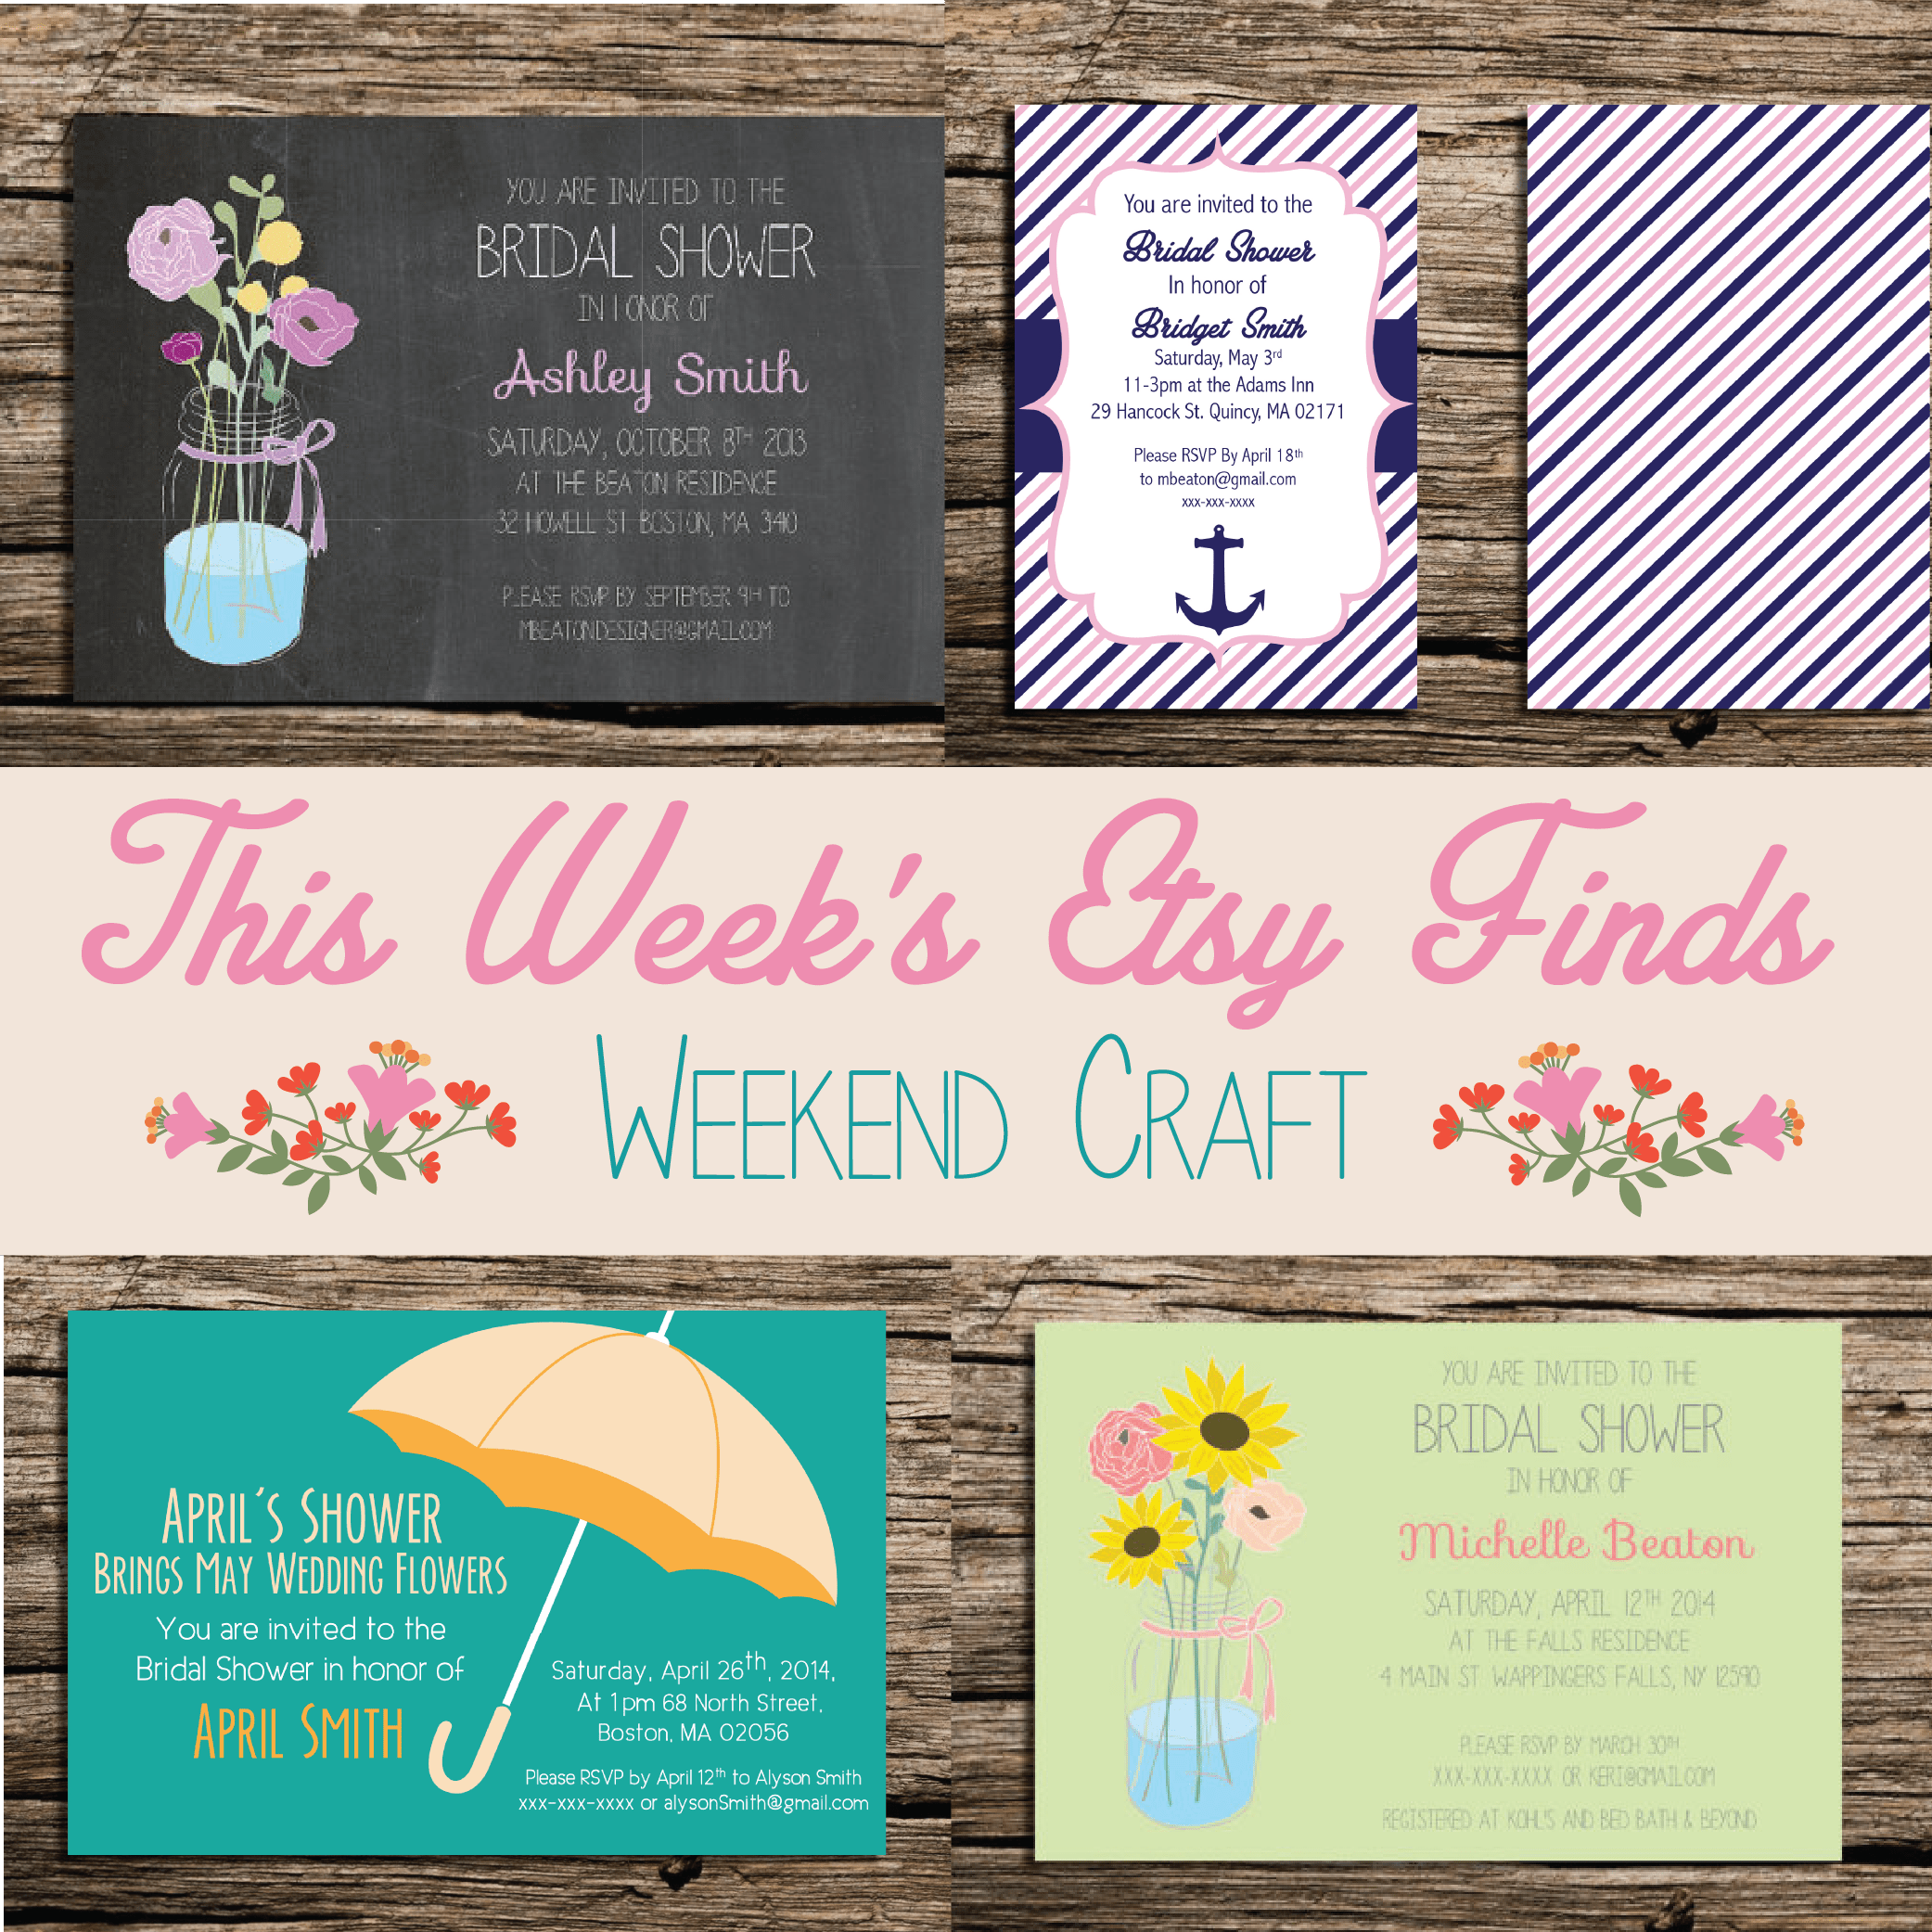 This Weeks Etsy Finds– Weekend Craft